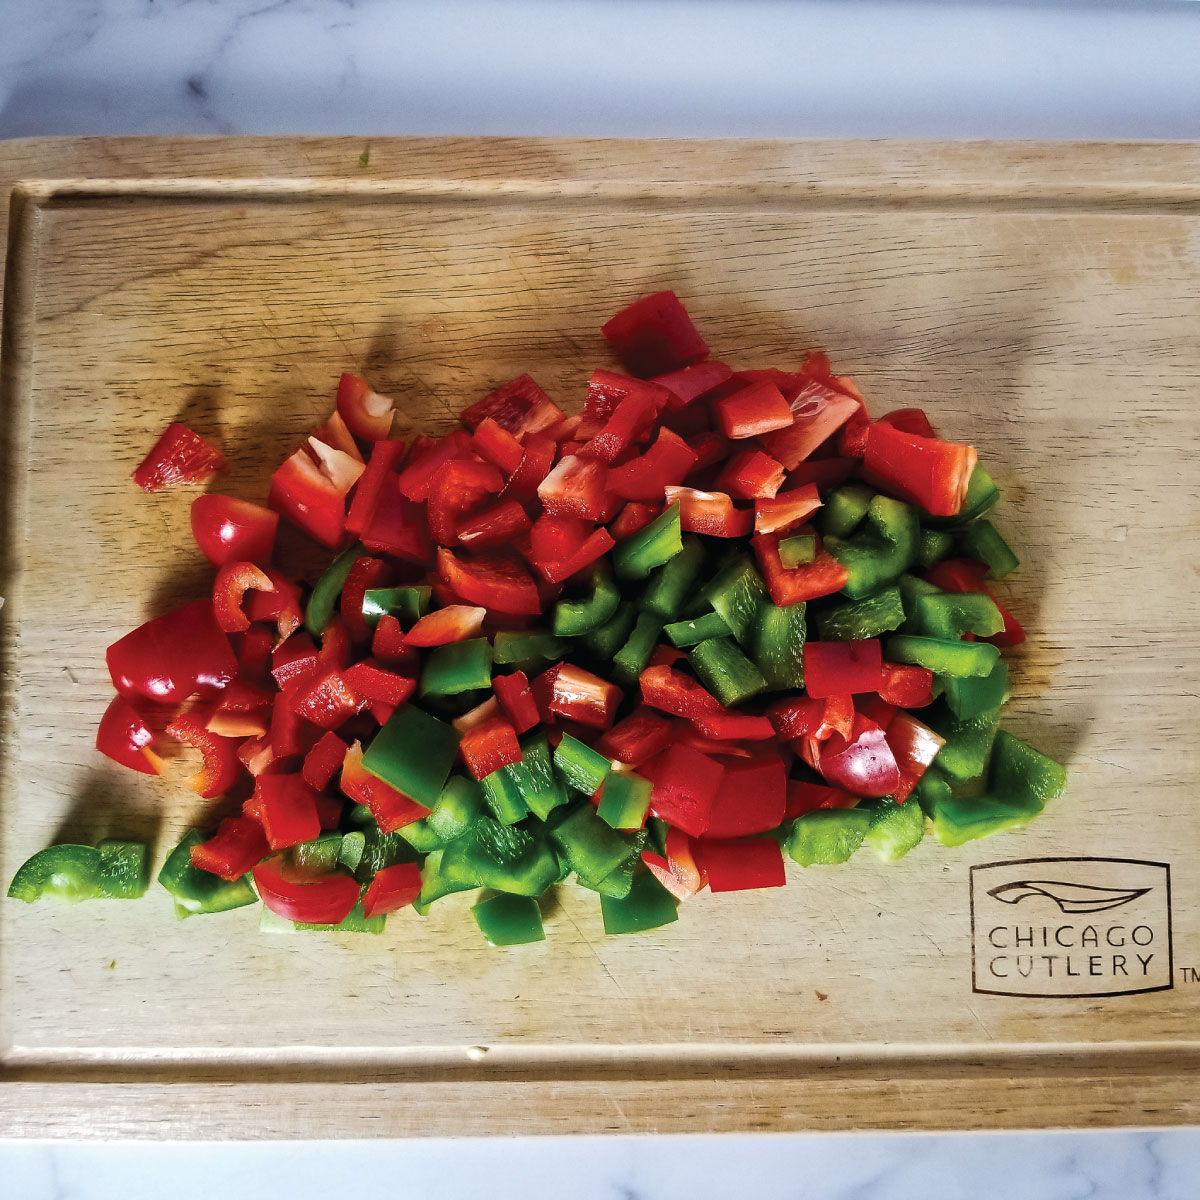 red and green bell peppers chopped on a cutting board